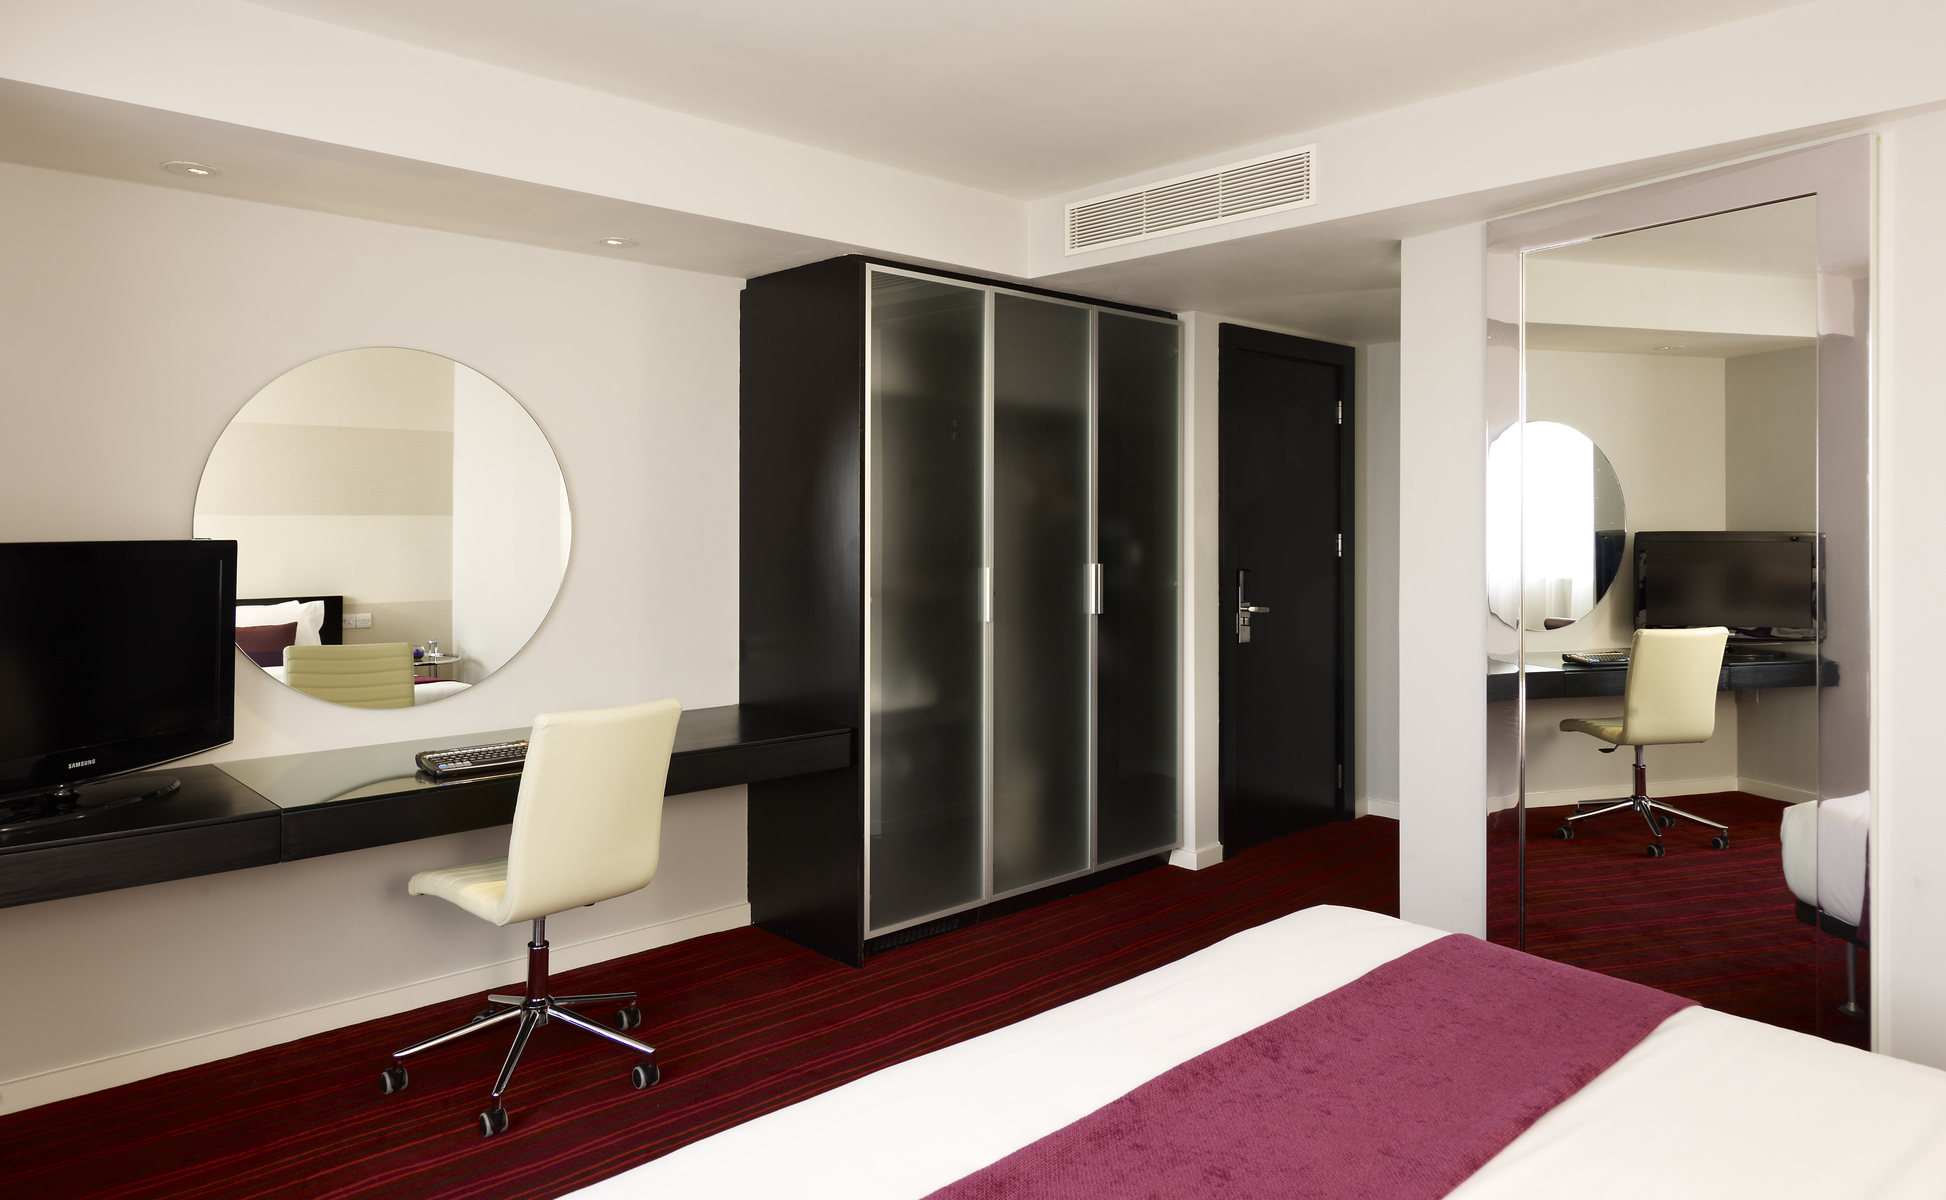 Leeds Accommodation  Park Plaza Leeds  Rooms